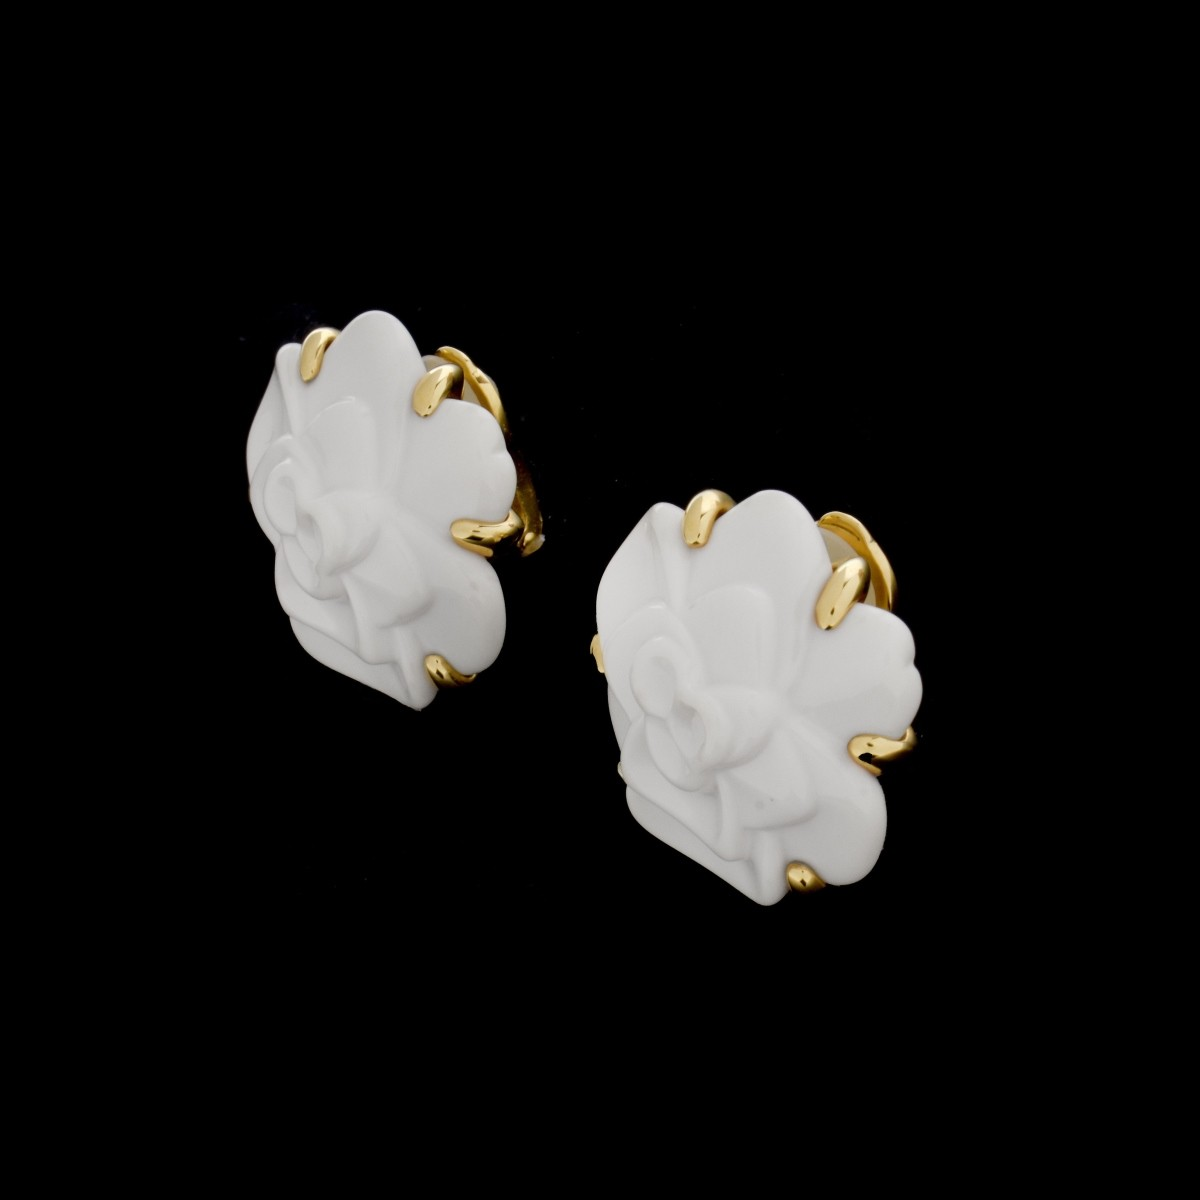 Chanel Agate and 18K Earrings